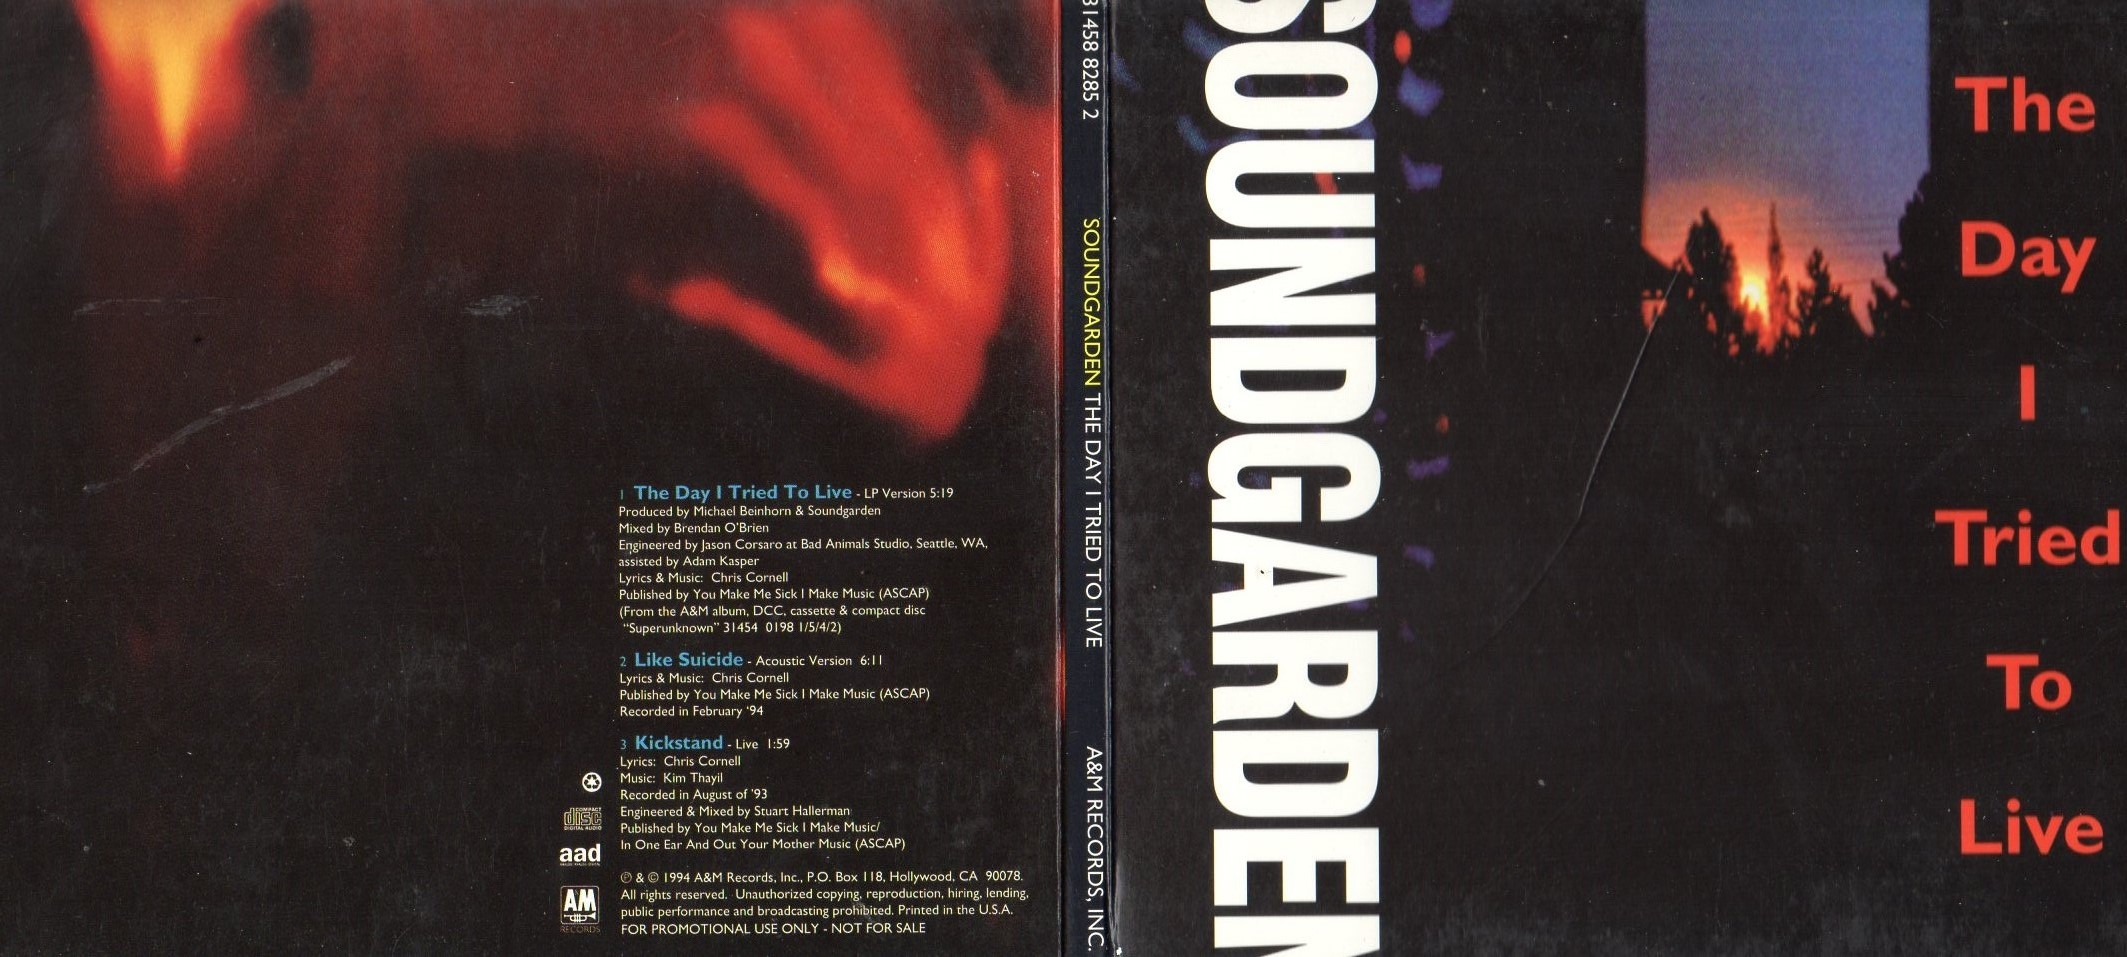 Soundgarden The Day I Tried To Records Lps Vinyl And Cds